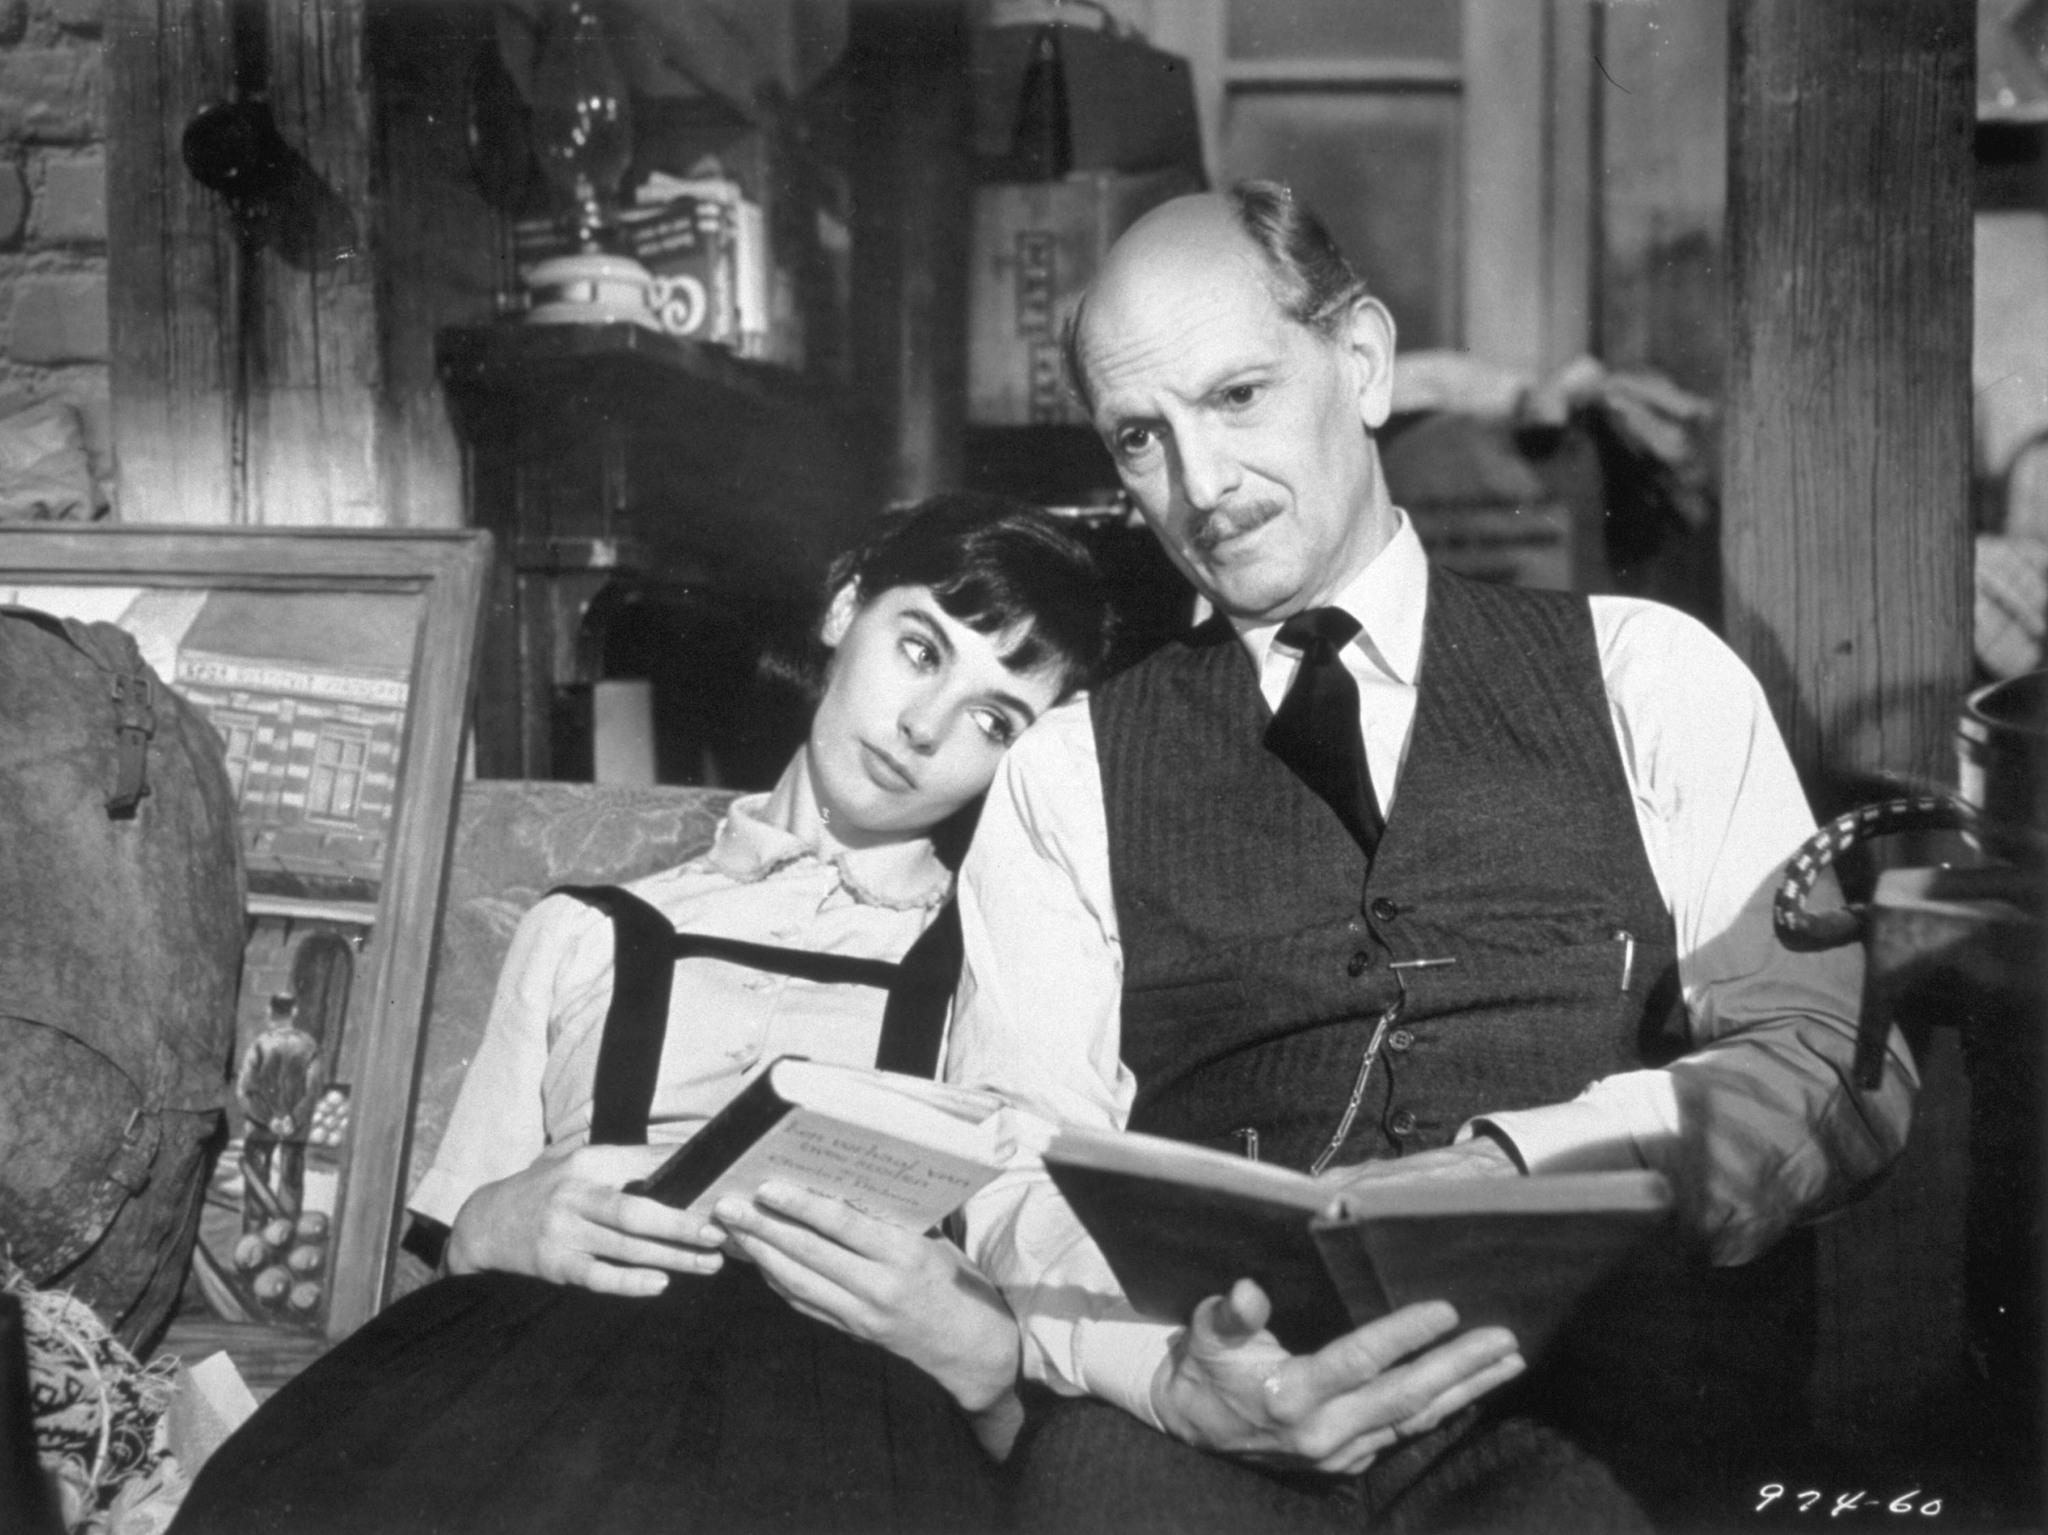 still-of-millie-perkins-and-joseph-schildkraut-in-the-diary-of-anne-frank.jpg